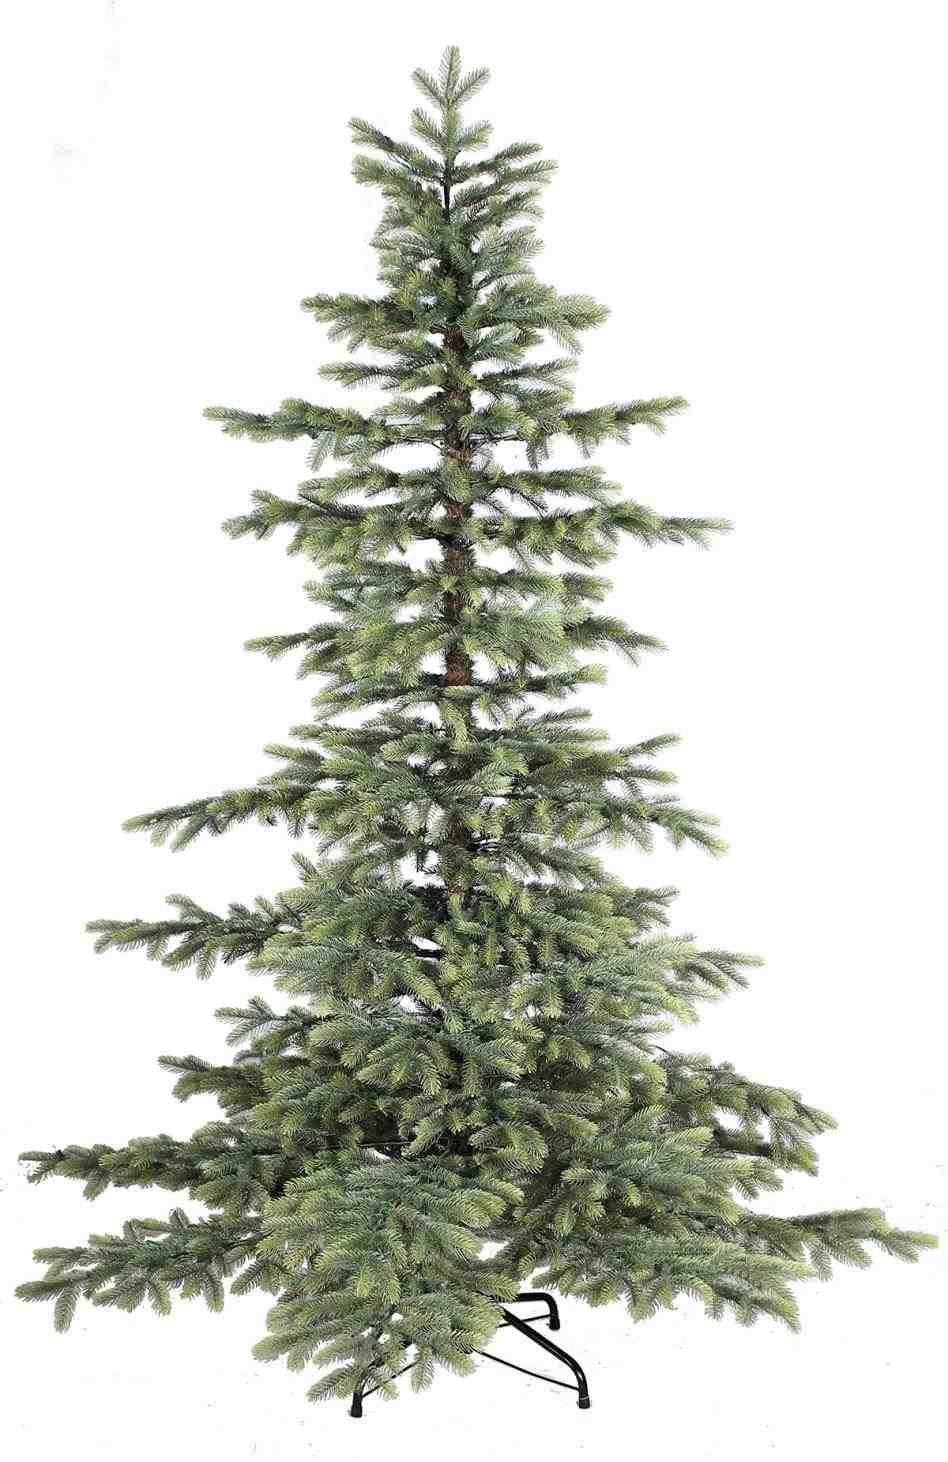 Christmas Tree Drawing Realistic at GetDrawings.com   Free for ...